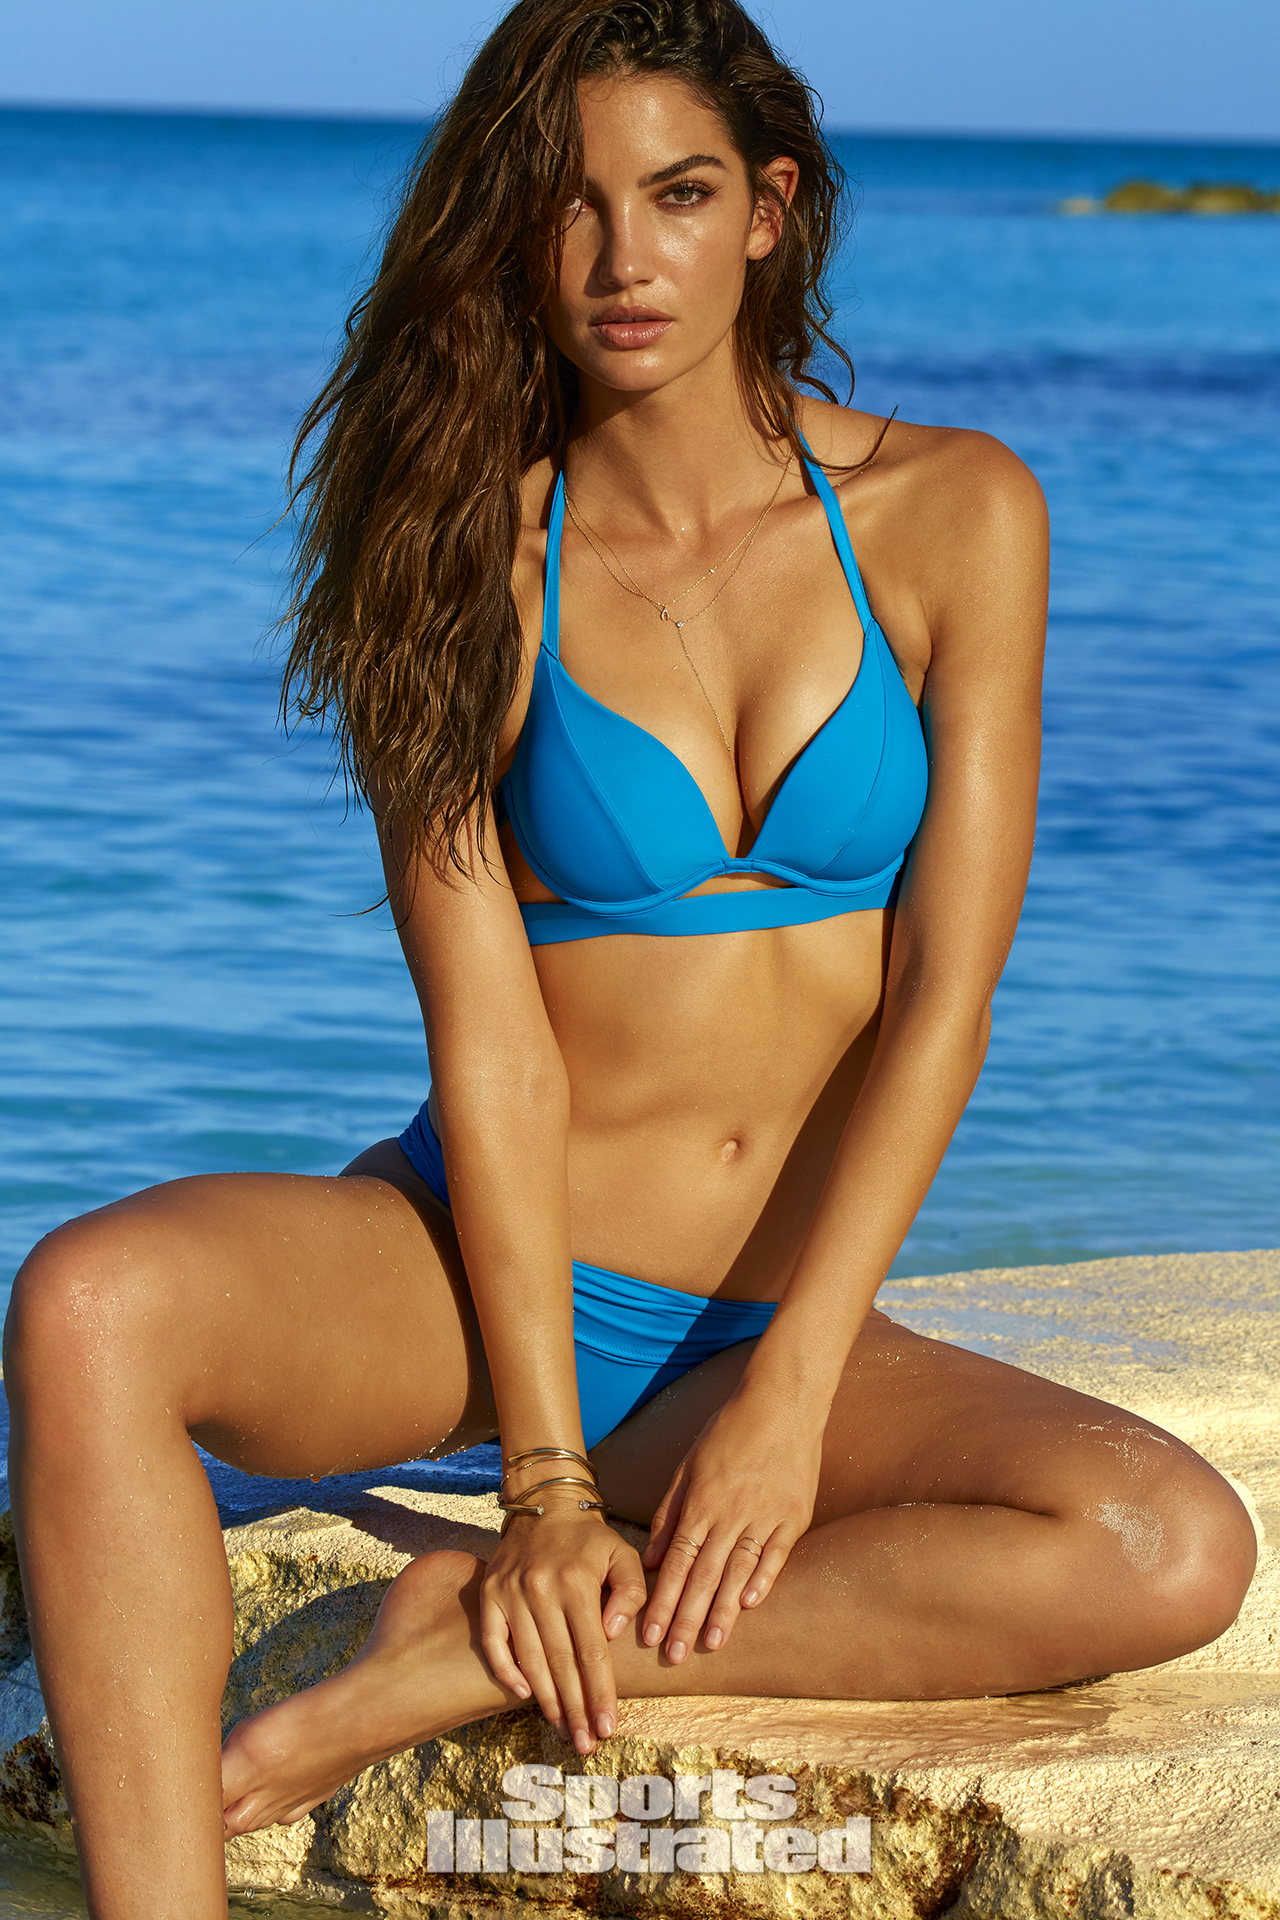 Lily Aldridge was photographed by James Macari in Turks & Caicos. Swimsuit by Victoria's Secret.